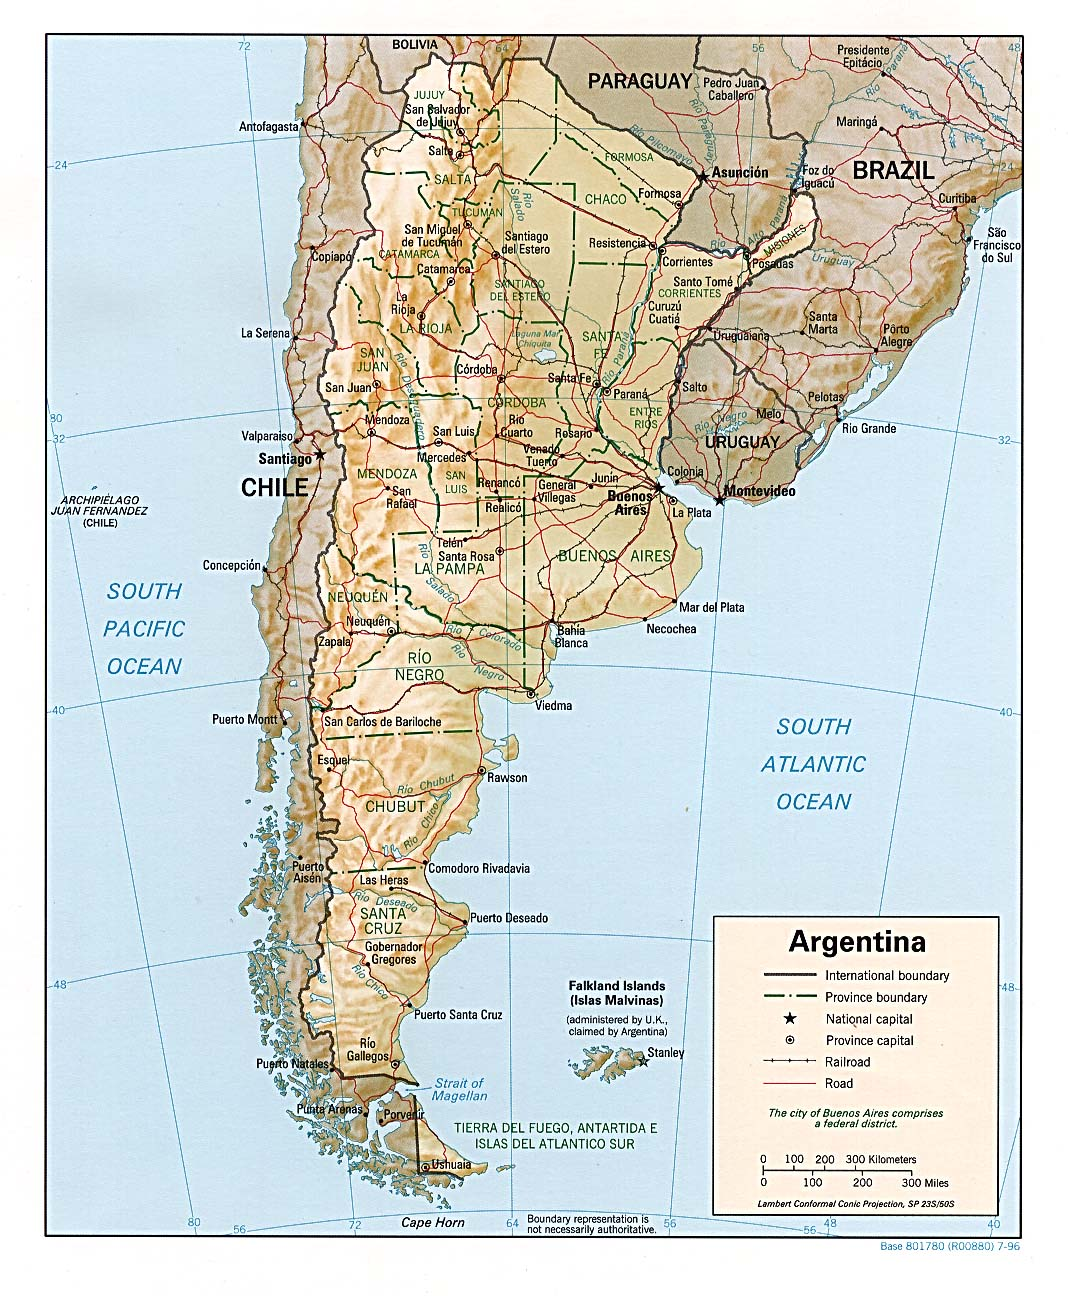 Argentina Tourist Map Argentina mappery – Tourist Map of Argentina